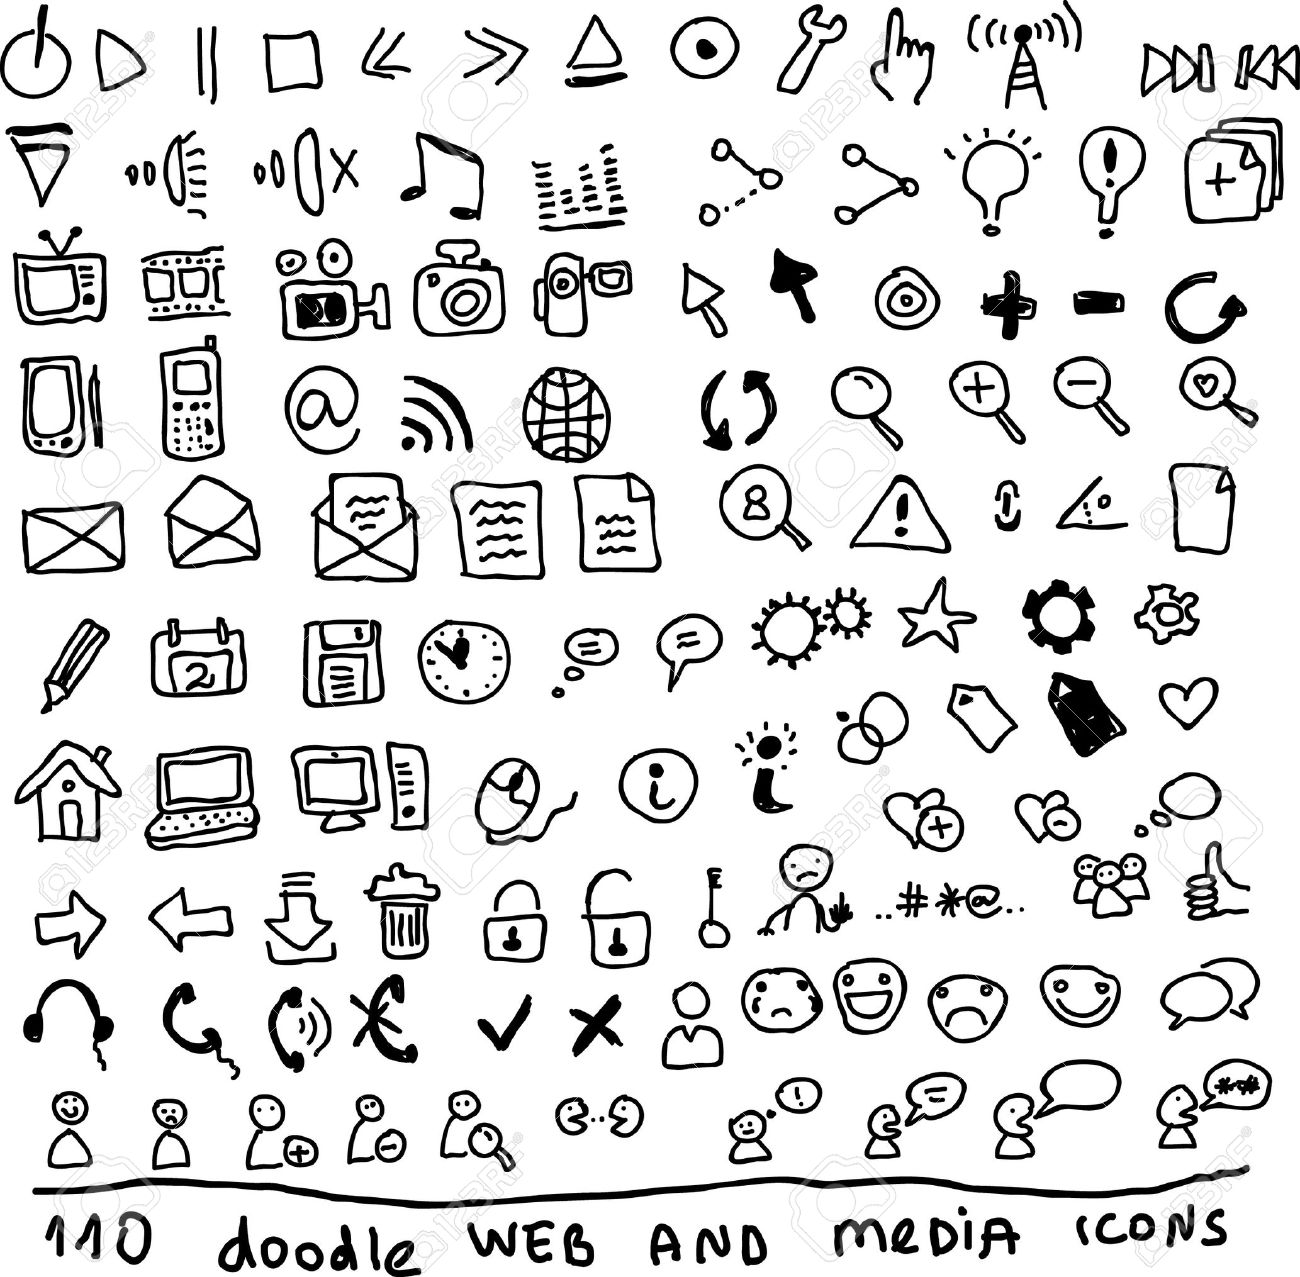 110 doodle web media and social media icons Stock Vector - 14987617